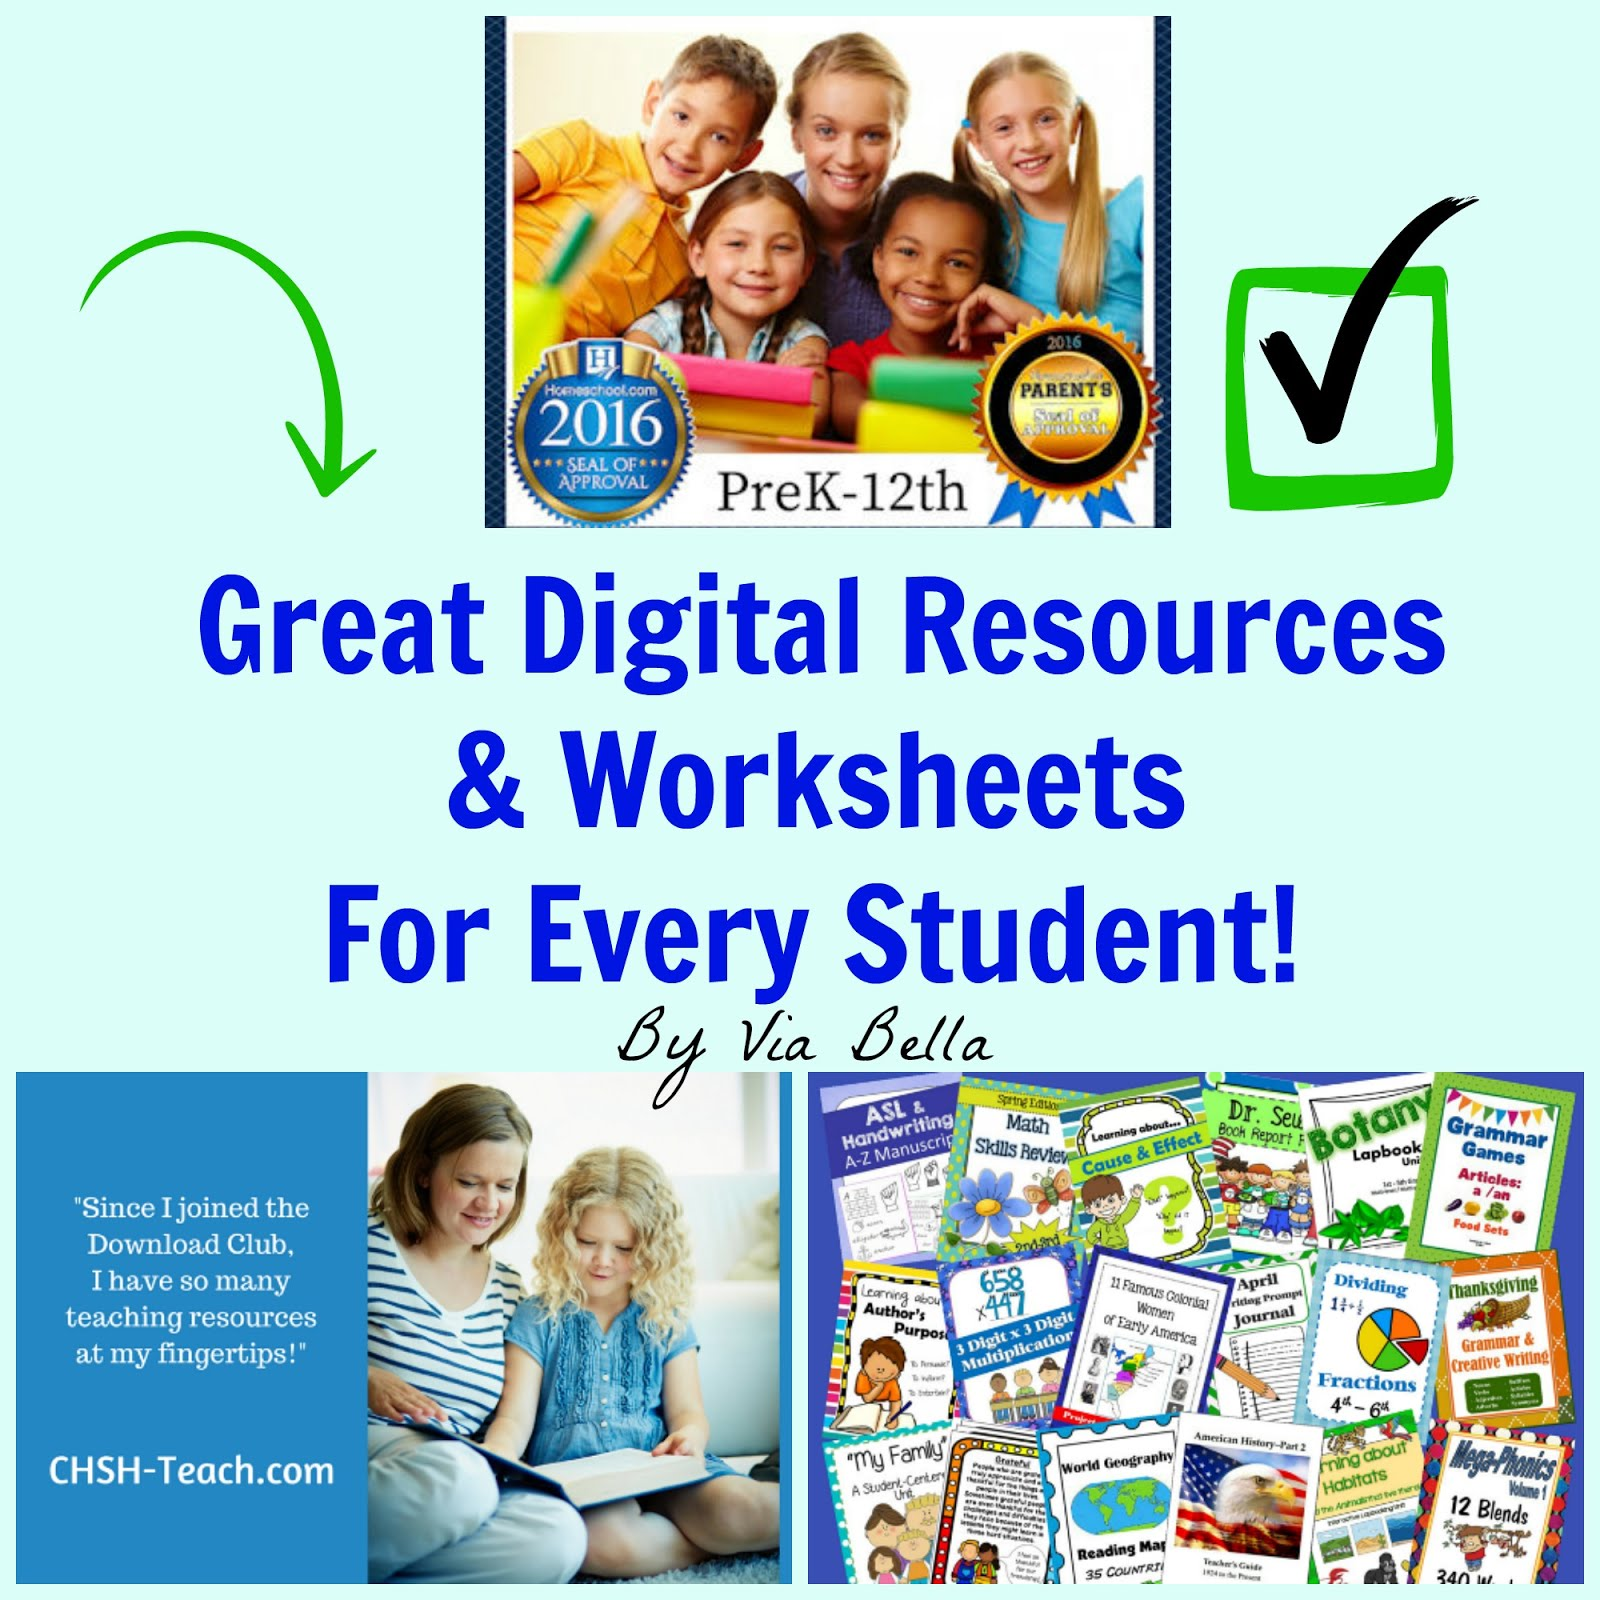 Via Bella Great Digital Resources Amp Worksheets For Every